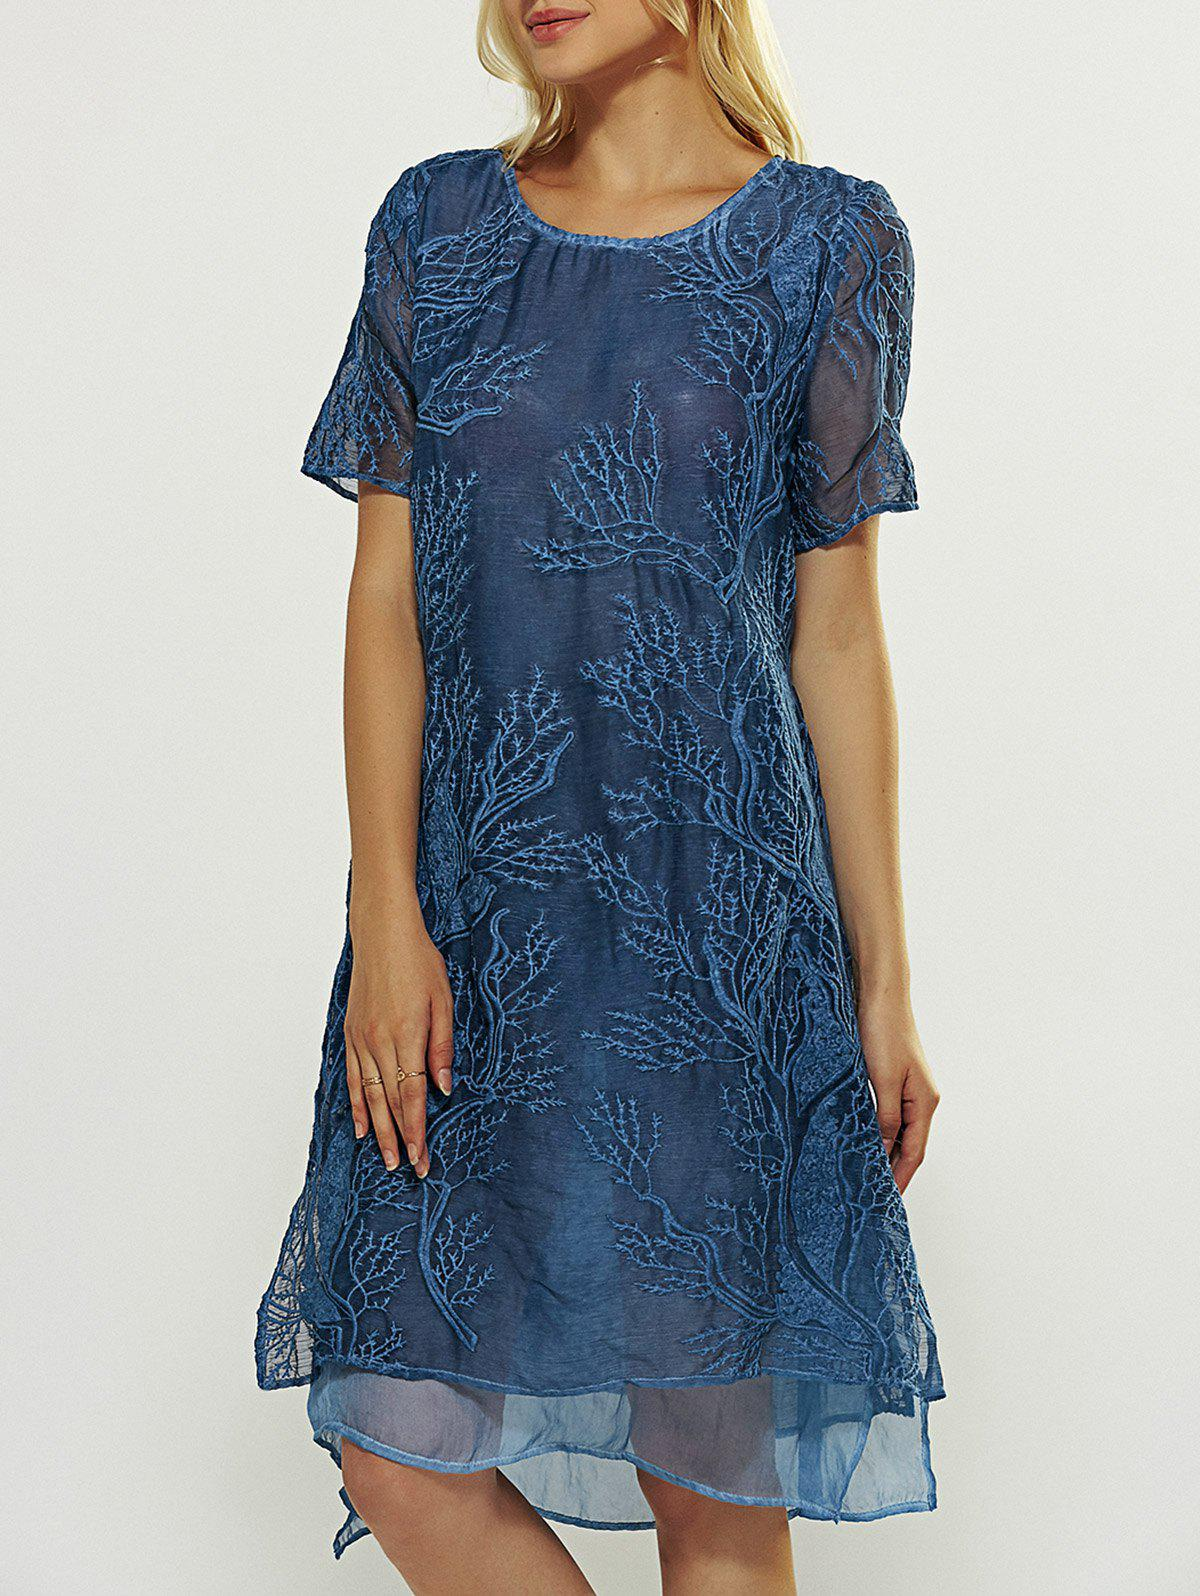 Short Sleeve Embroidered Layered Dress - BLUE XL